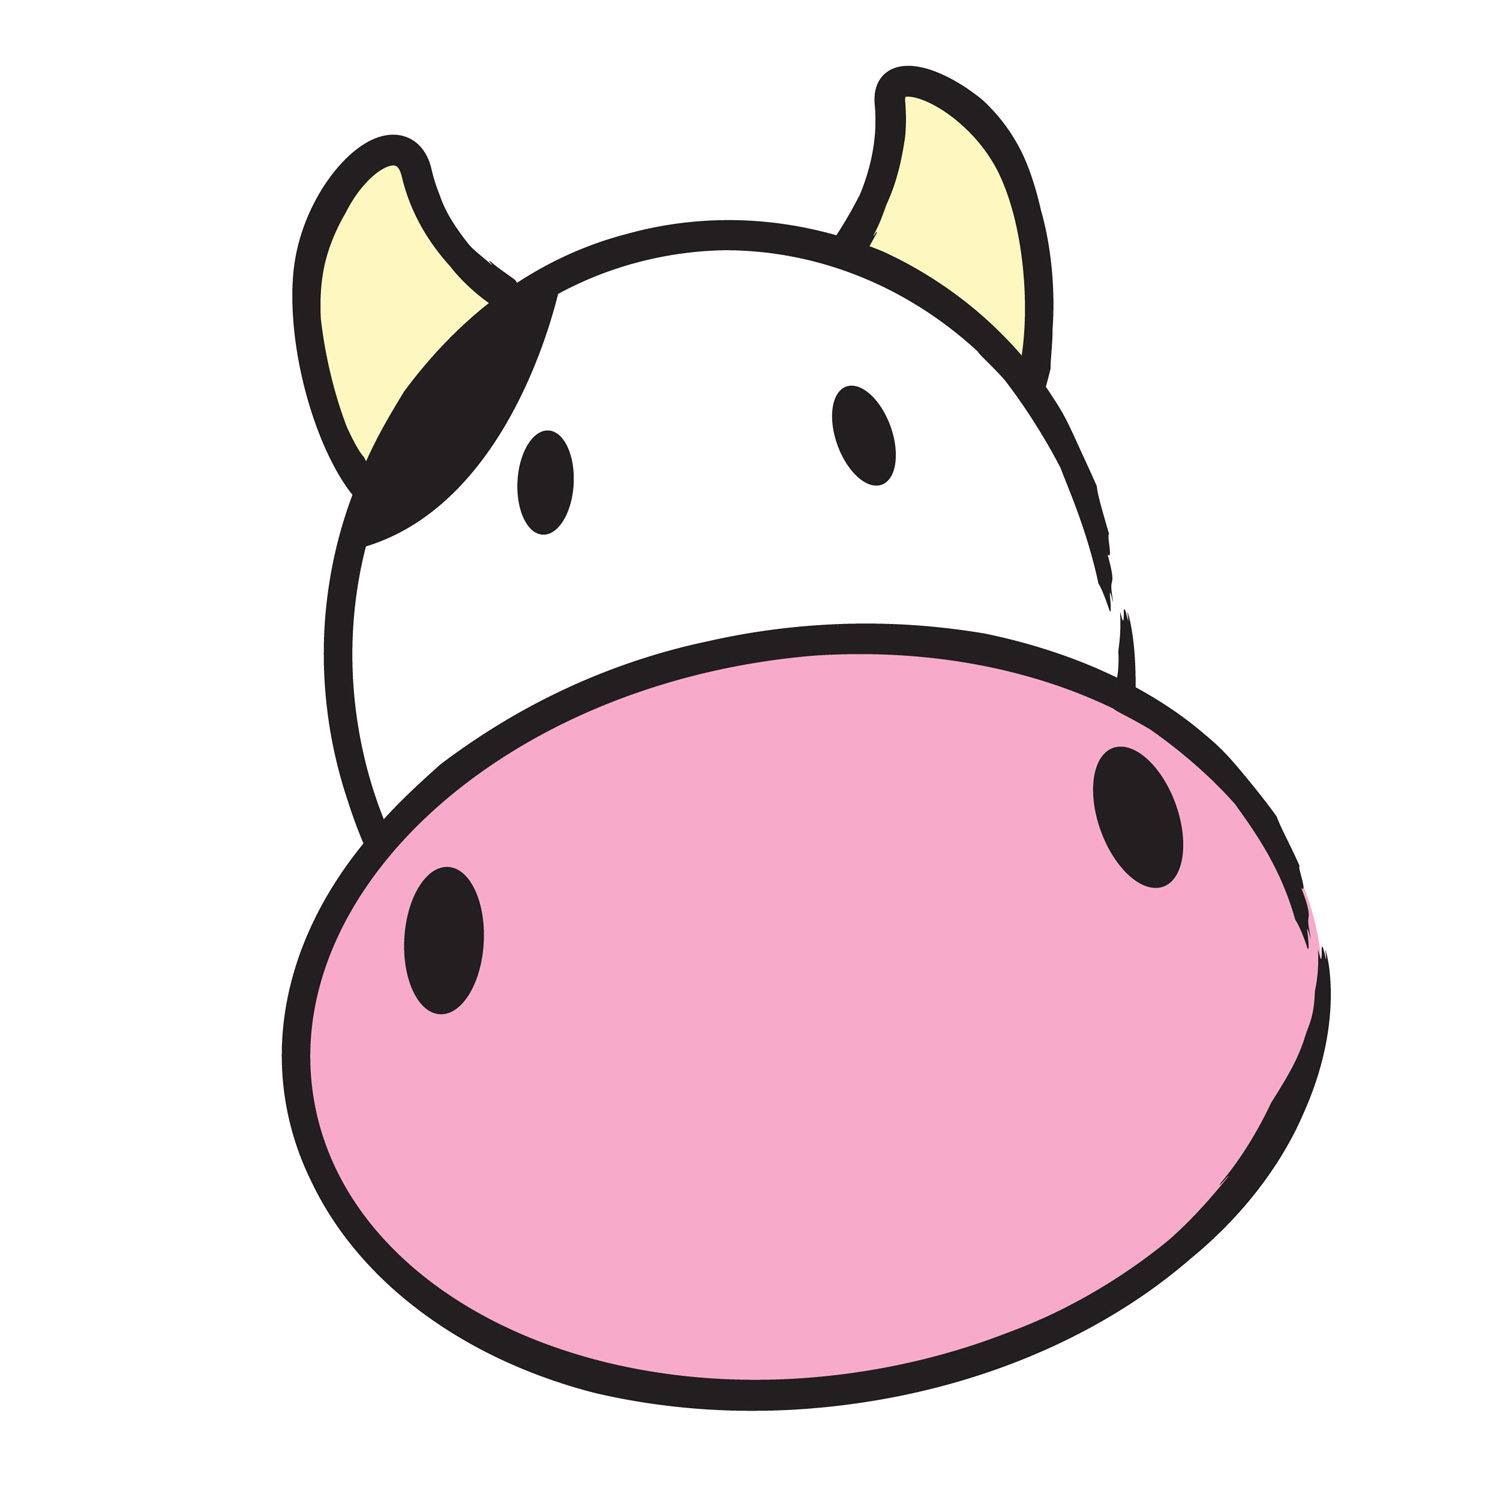 Cow Clipart   Simple Vector Illustration Of A Cute Cow Head  The Cow